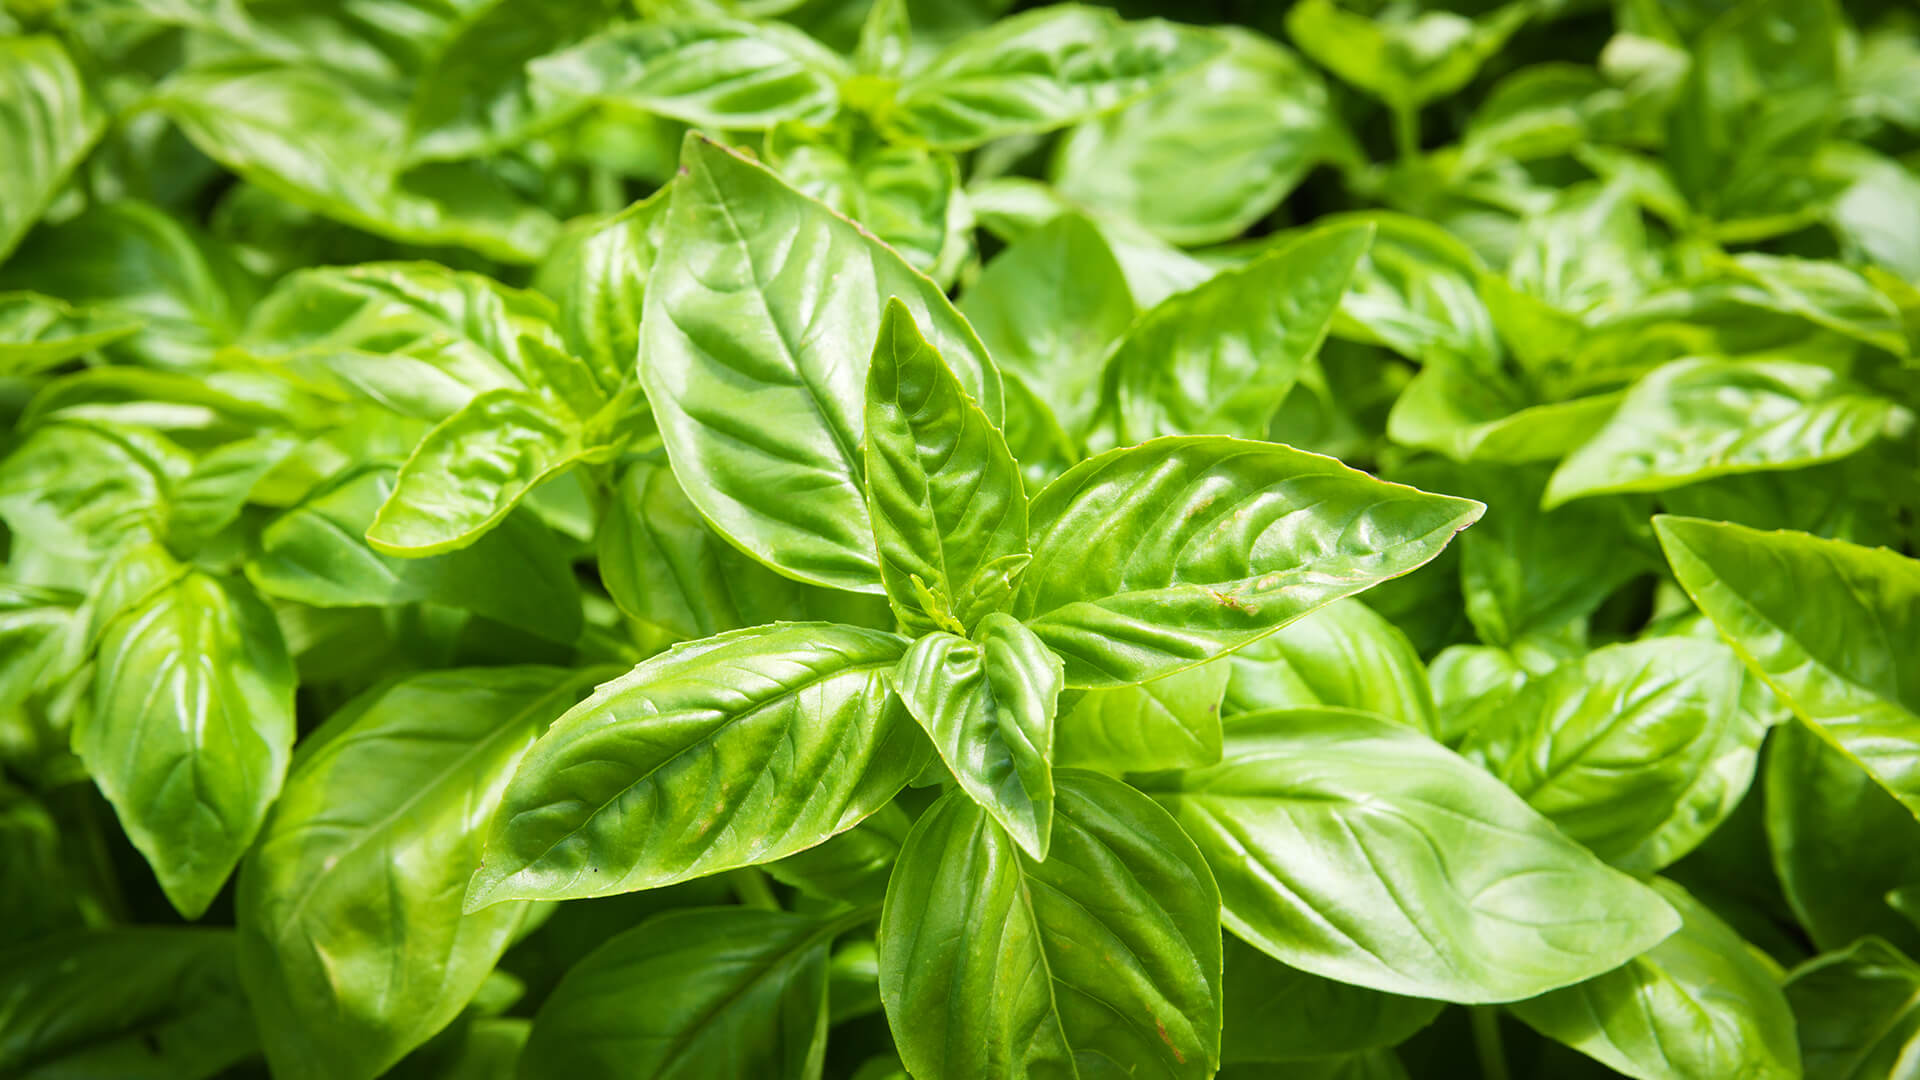 Basil - We love it for its natural sweetness and awesome flavour. It is the ideal partner to Thyme, Rosemary and Oregano.